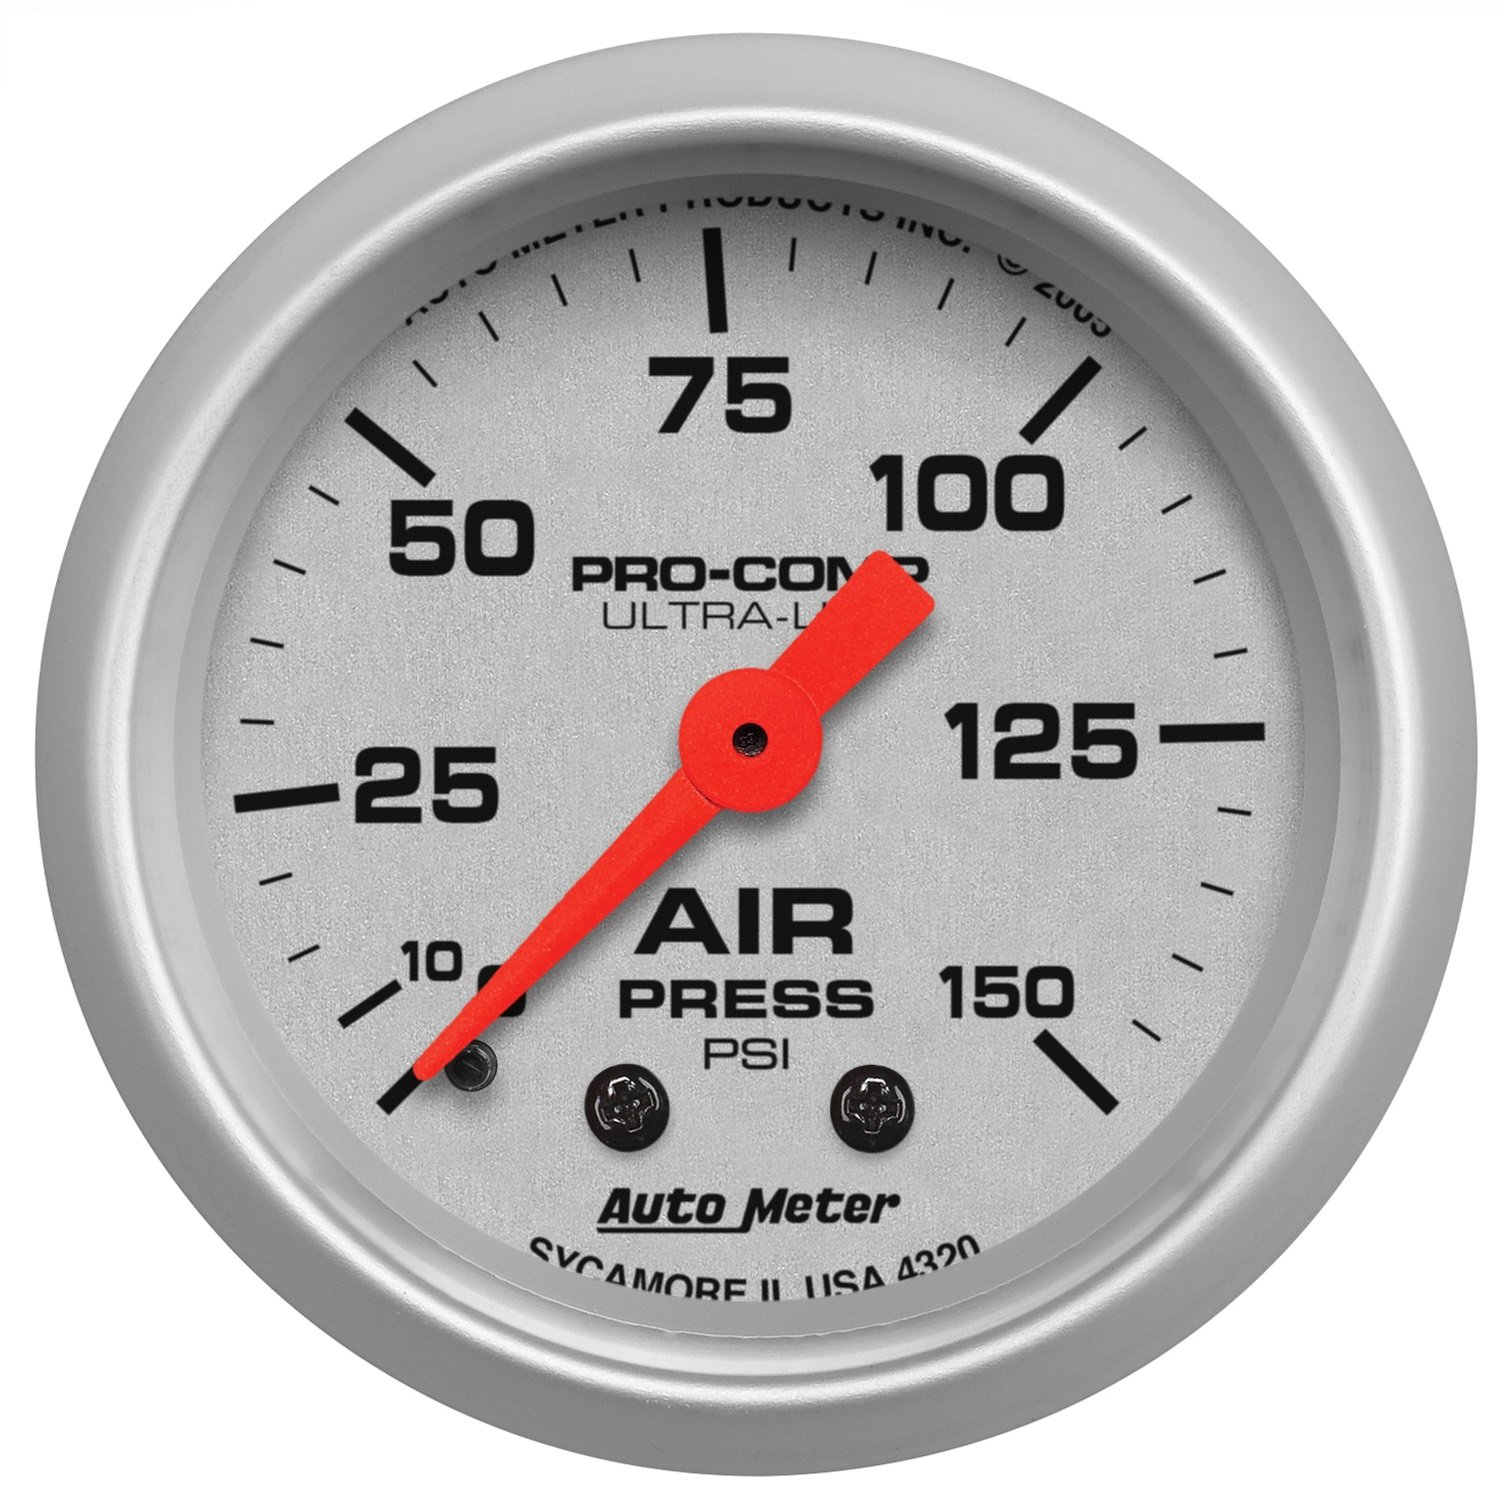 Auto Meter 4320 Ultra-Lite 2-1/16' 0-150 PSI Mechanical Air Pressure Gauge